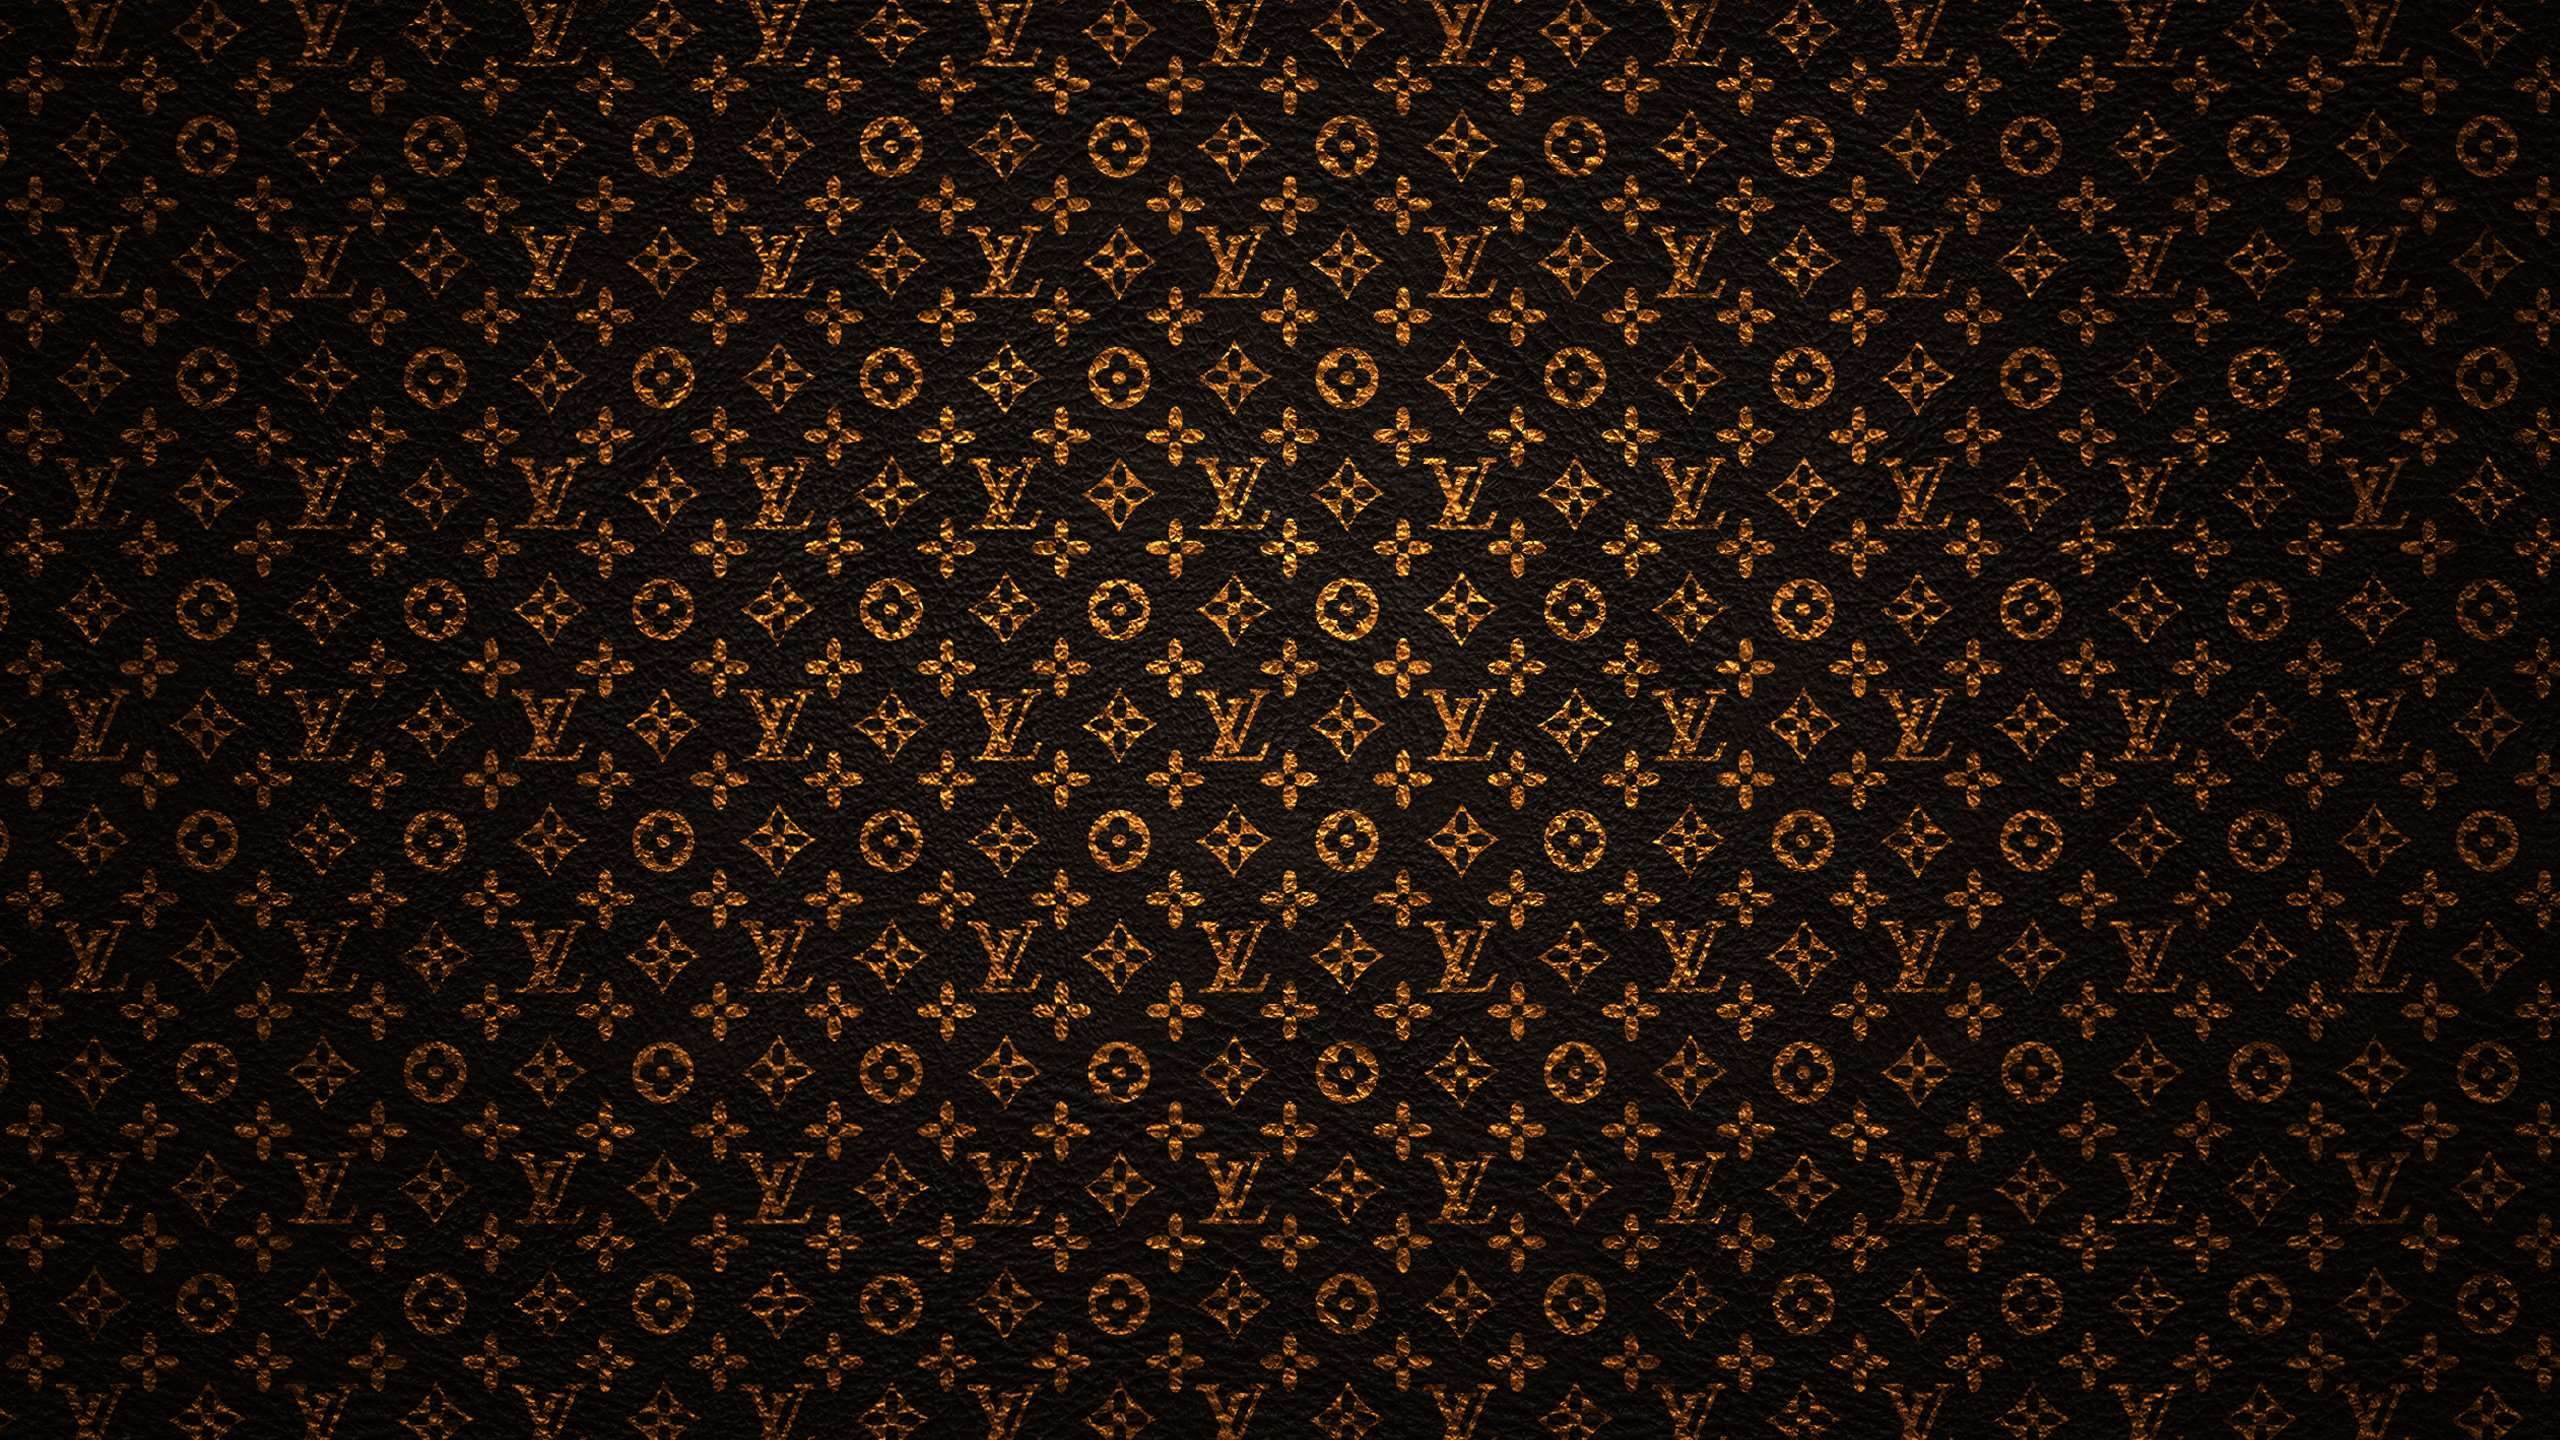 Gold Texture Wallpaper Hd: Louis Vuitton Ipad Wallpaper 2560x1440px